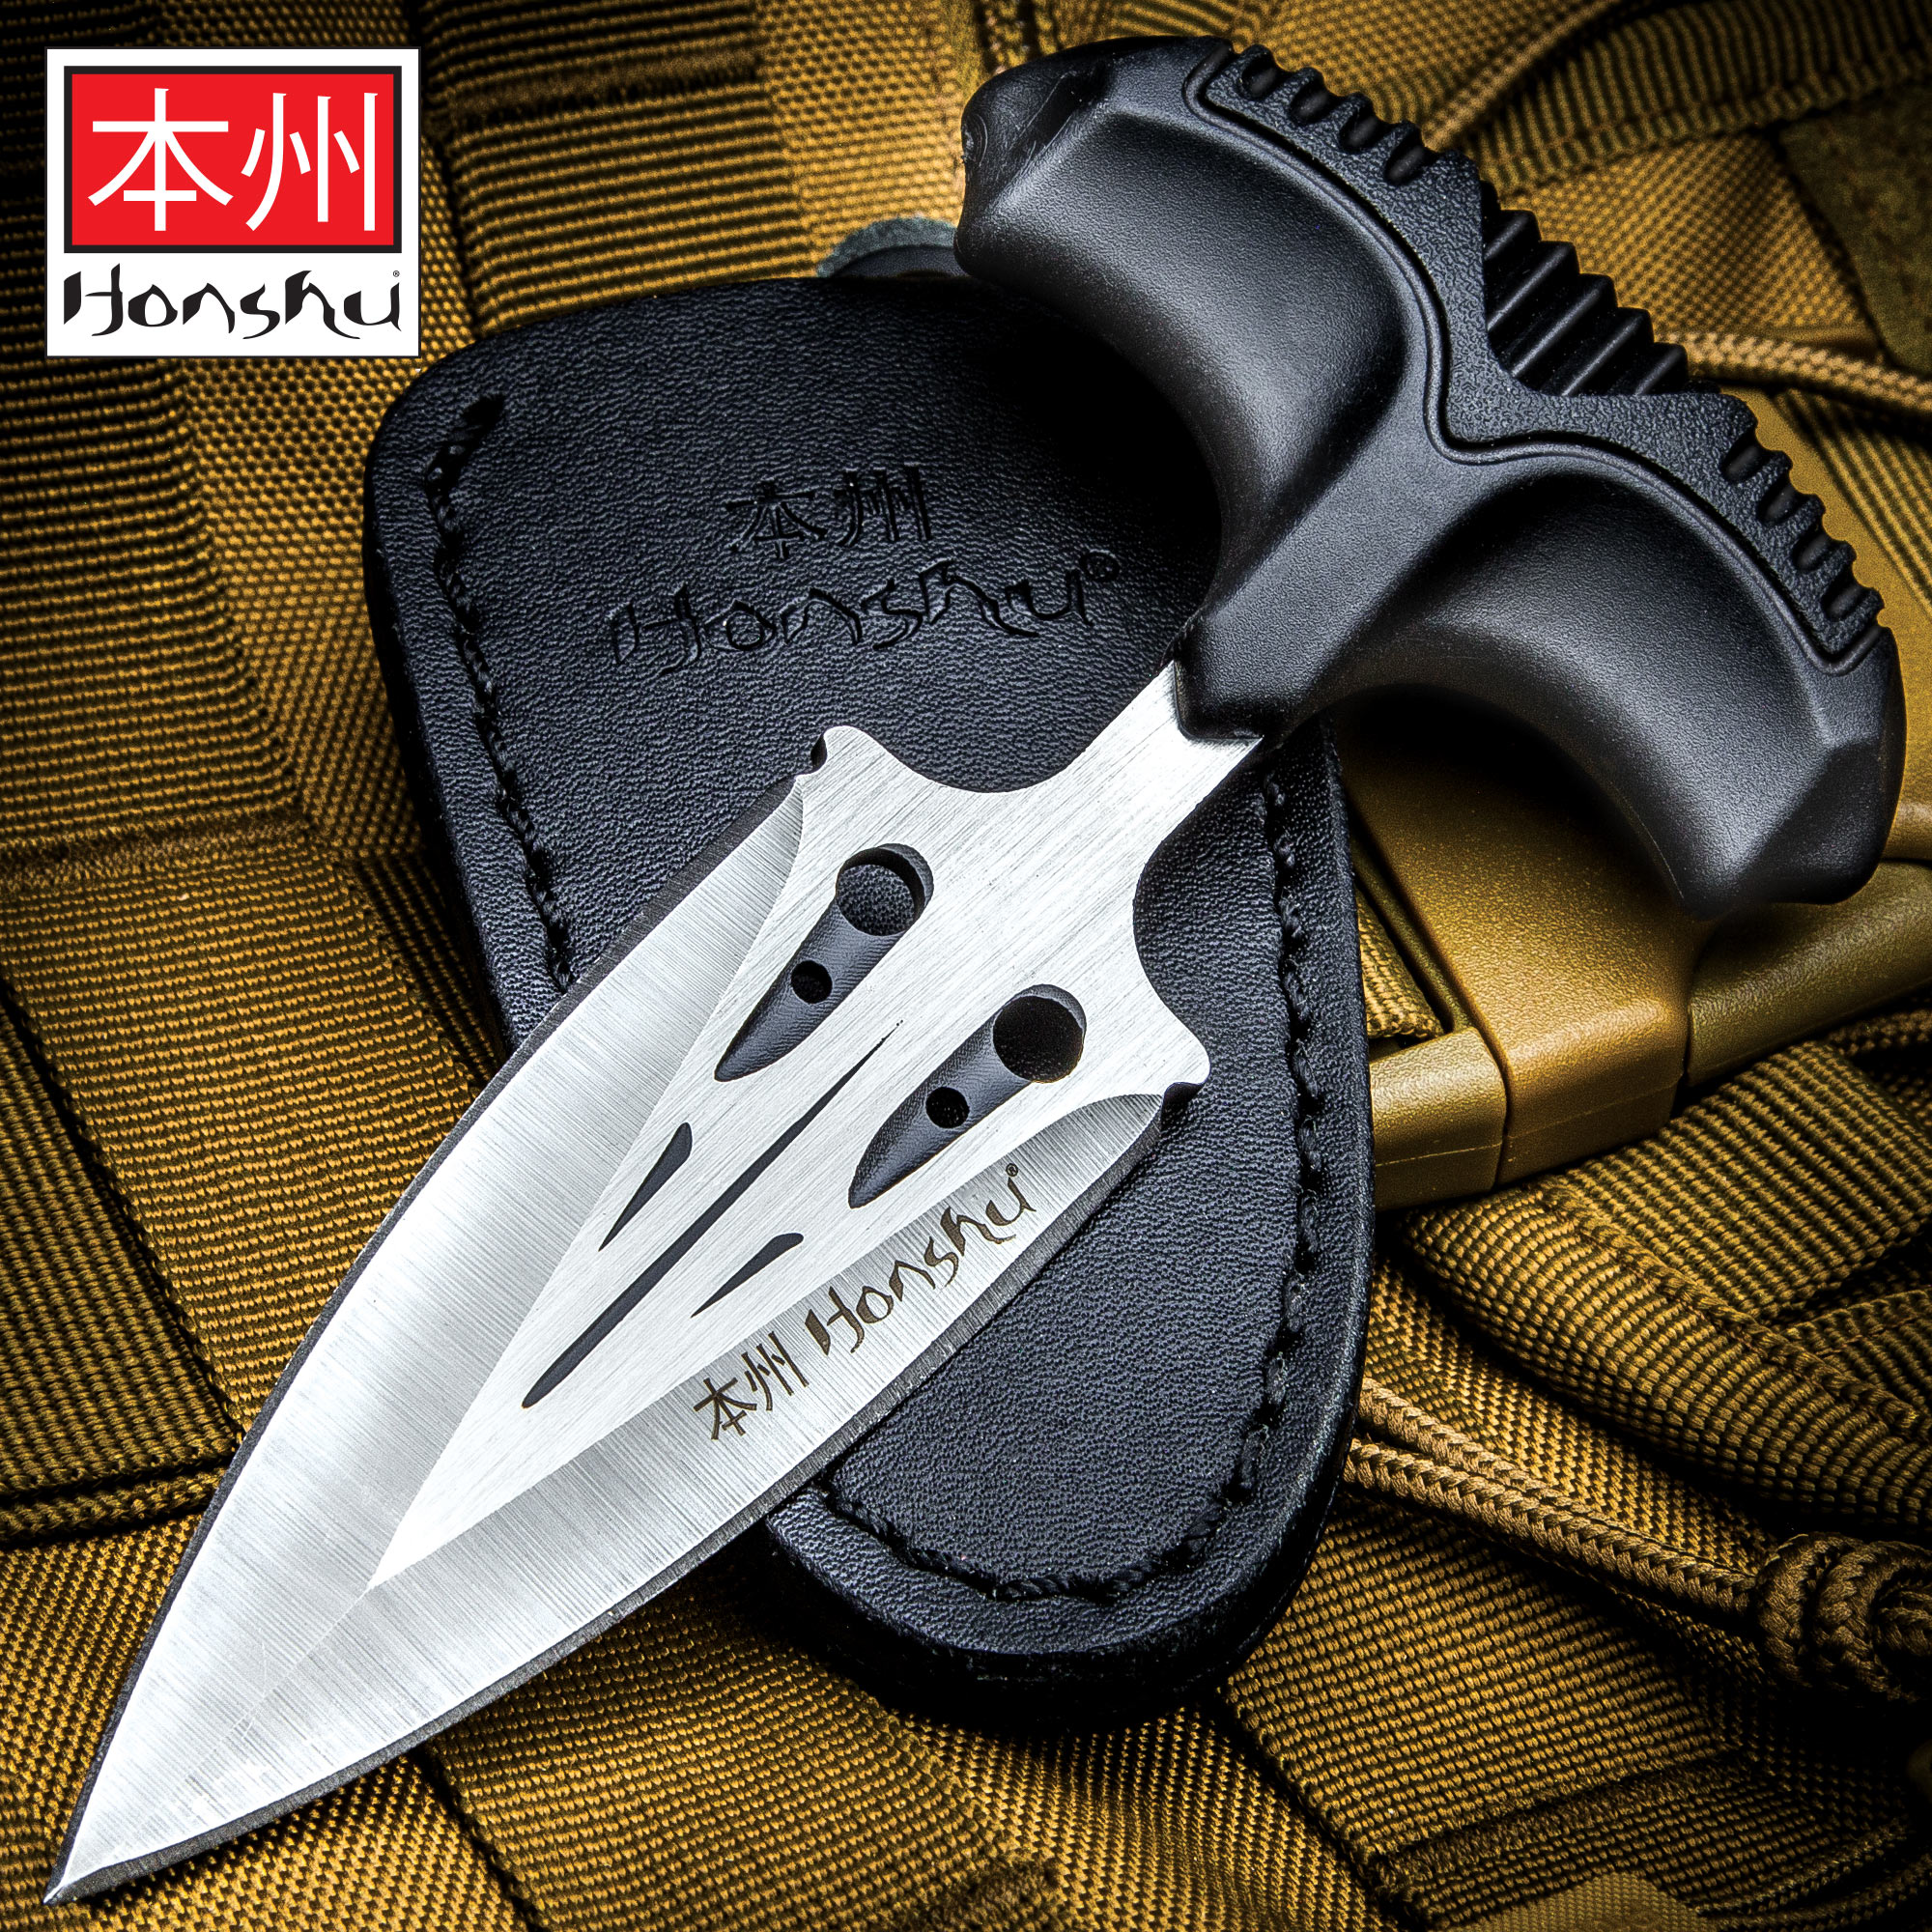 Push dagger clipart image black and white Push Daggers for Sale - Buy Quality Blades at Discount ... image black and white